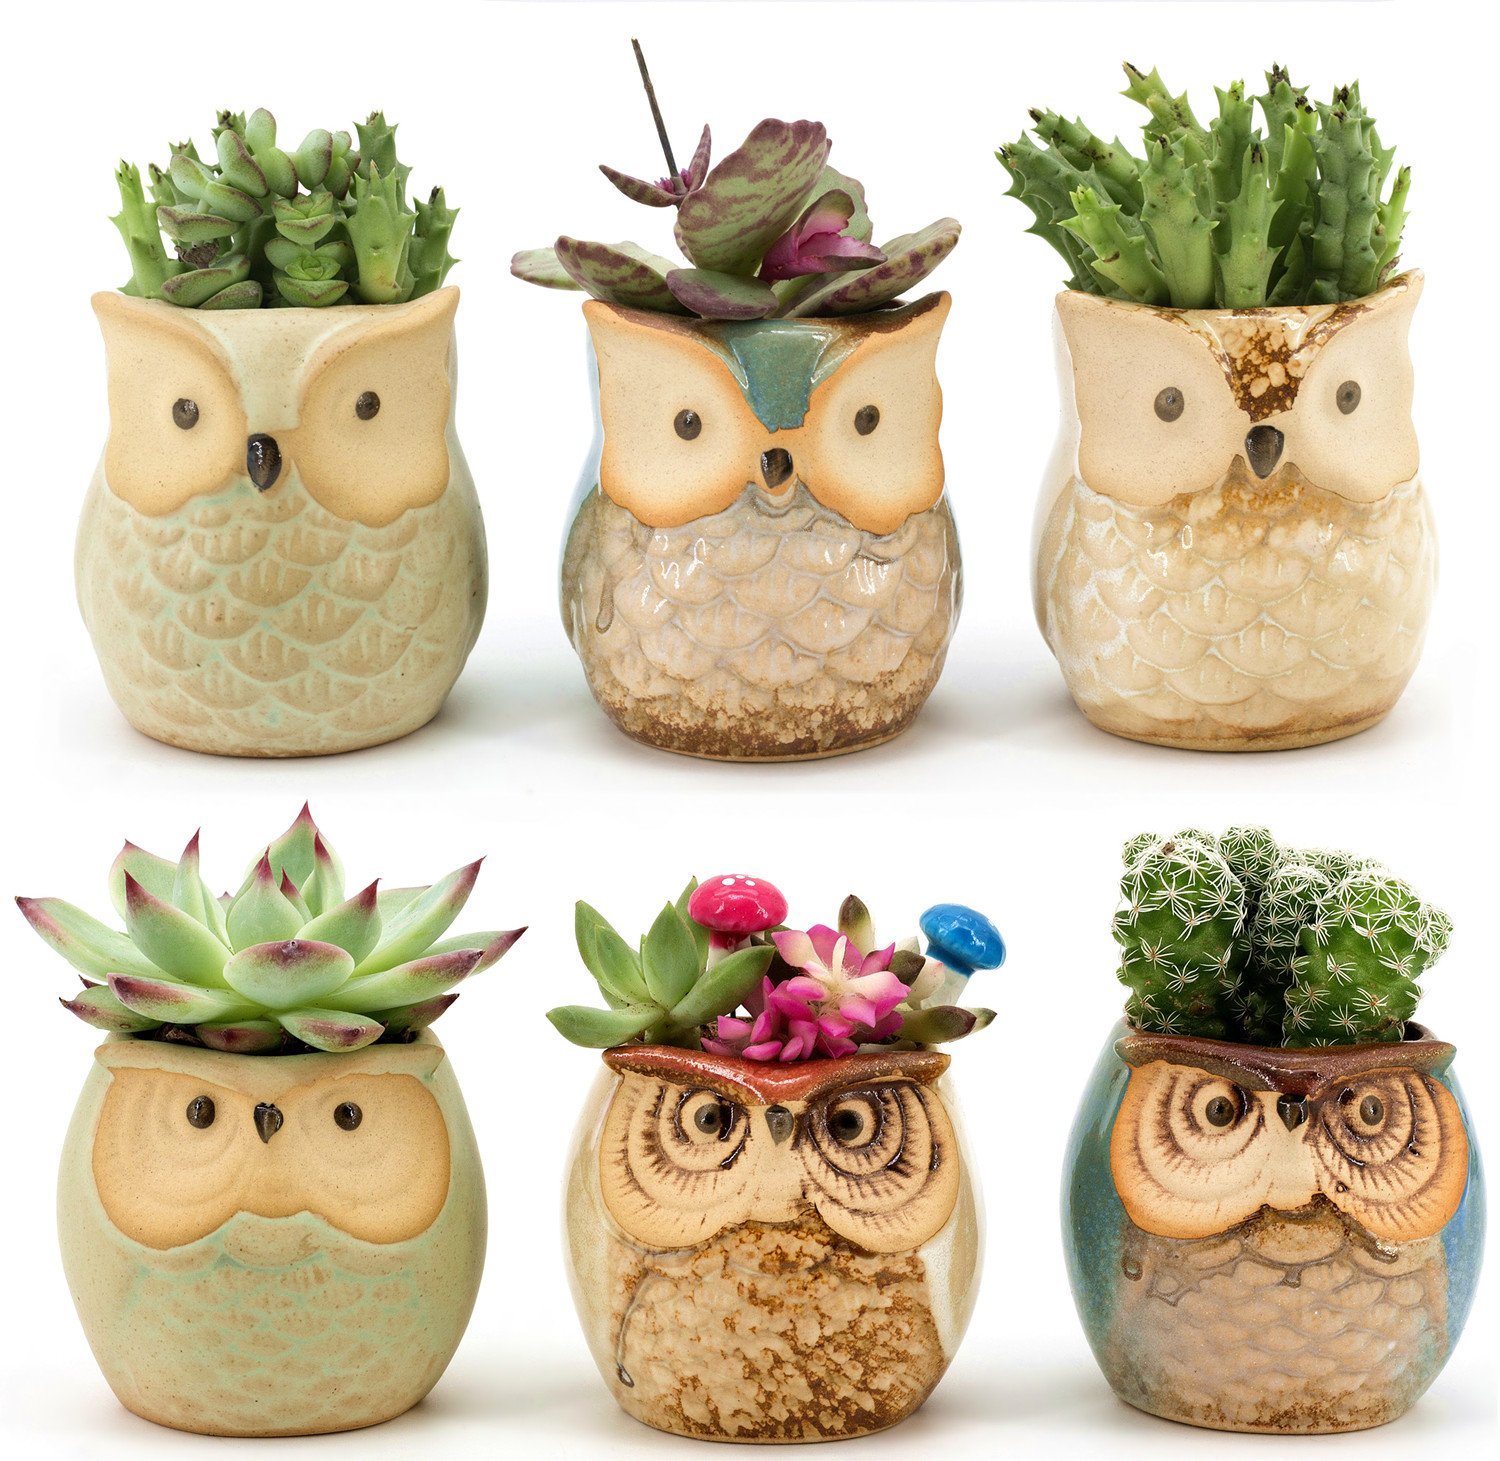 Weierken Mini 6PCS Owl Pot Ceramic Flowing Glaze Base Serial Set Succulent Plant Pot Cactus Plant Pot Flower Pot Container Planter Bonsai Pots With A Hole by Weierken